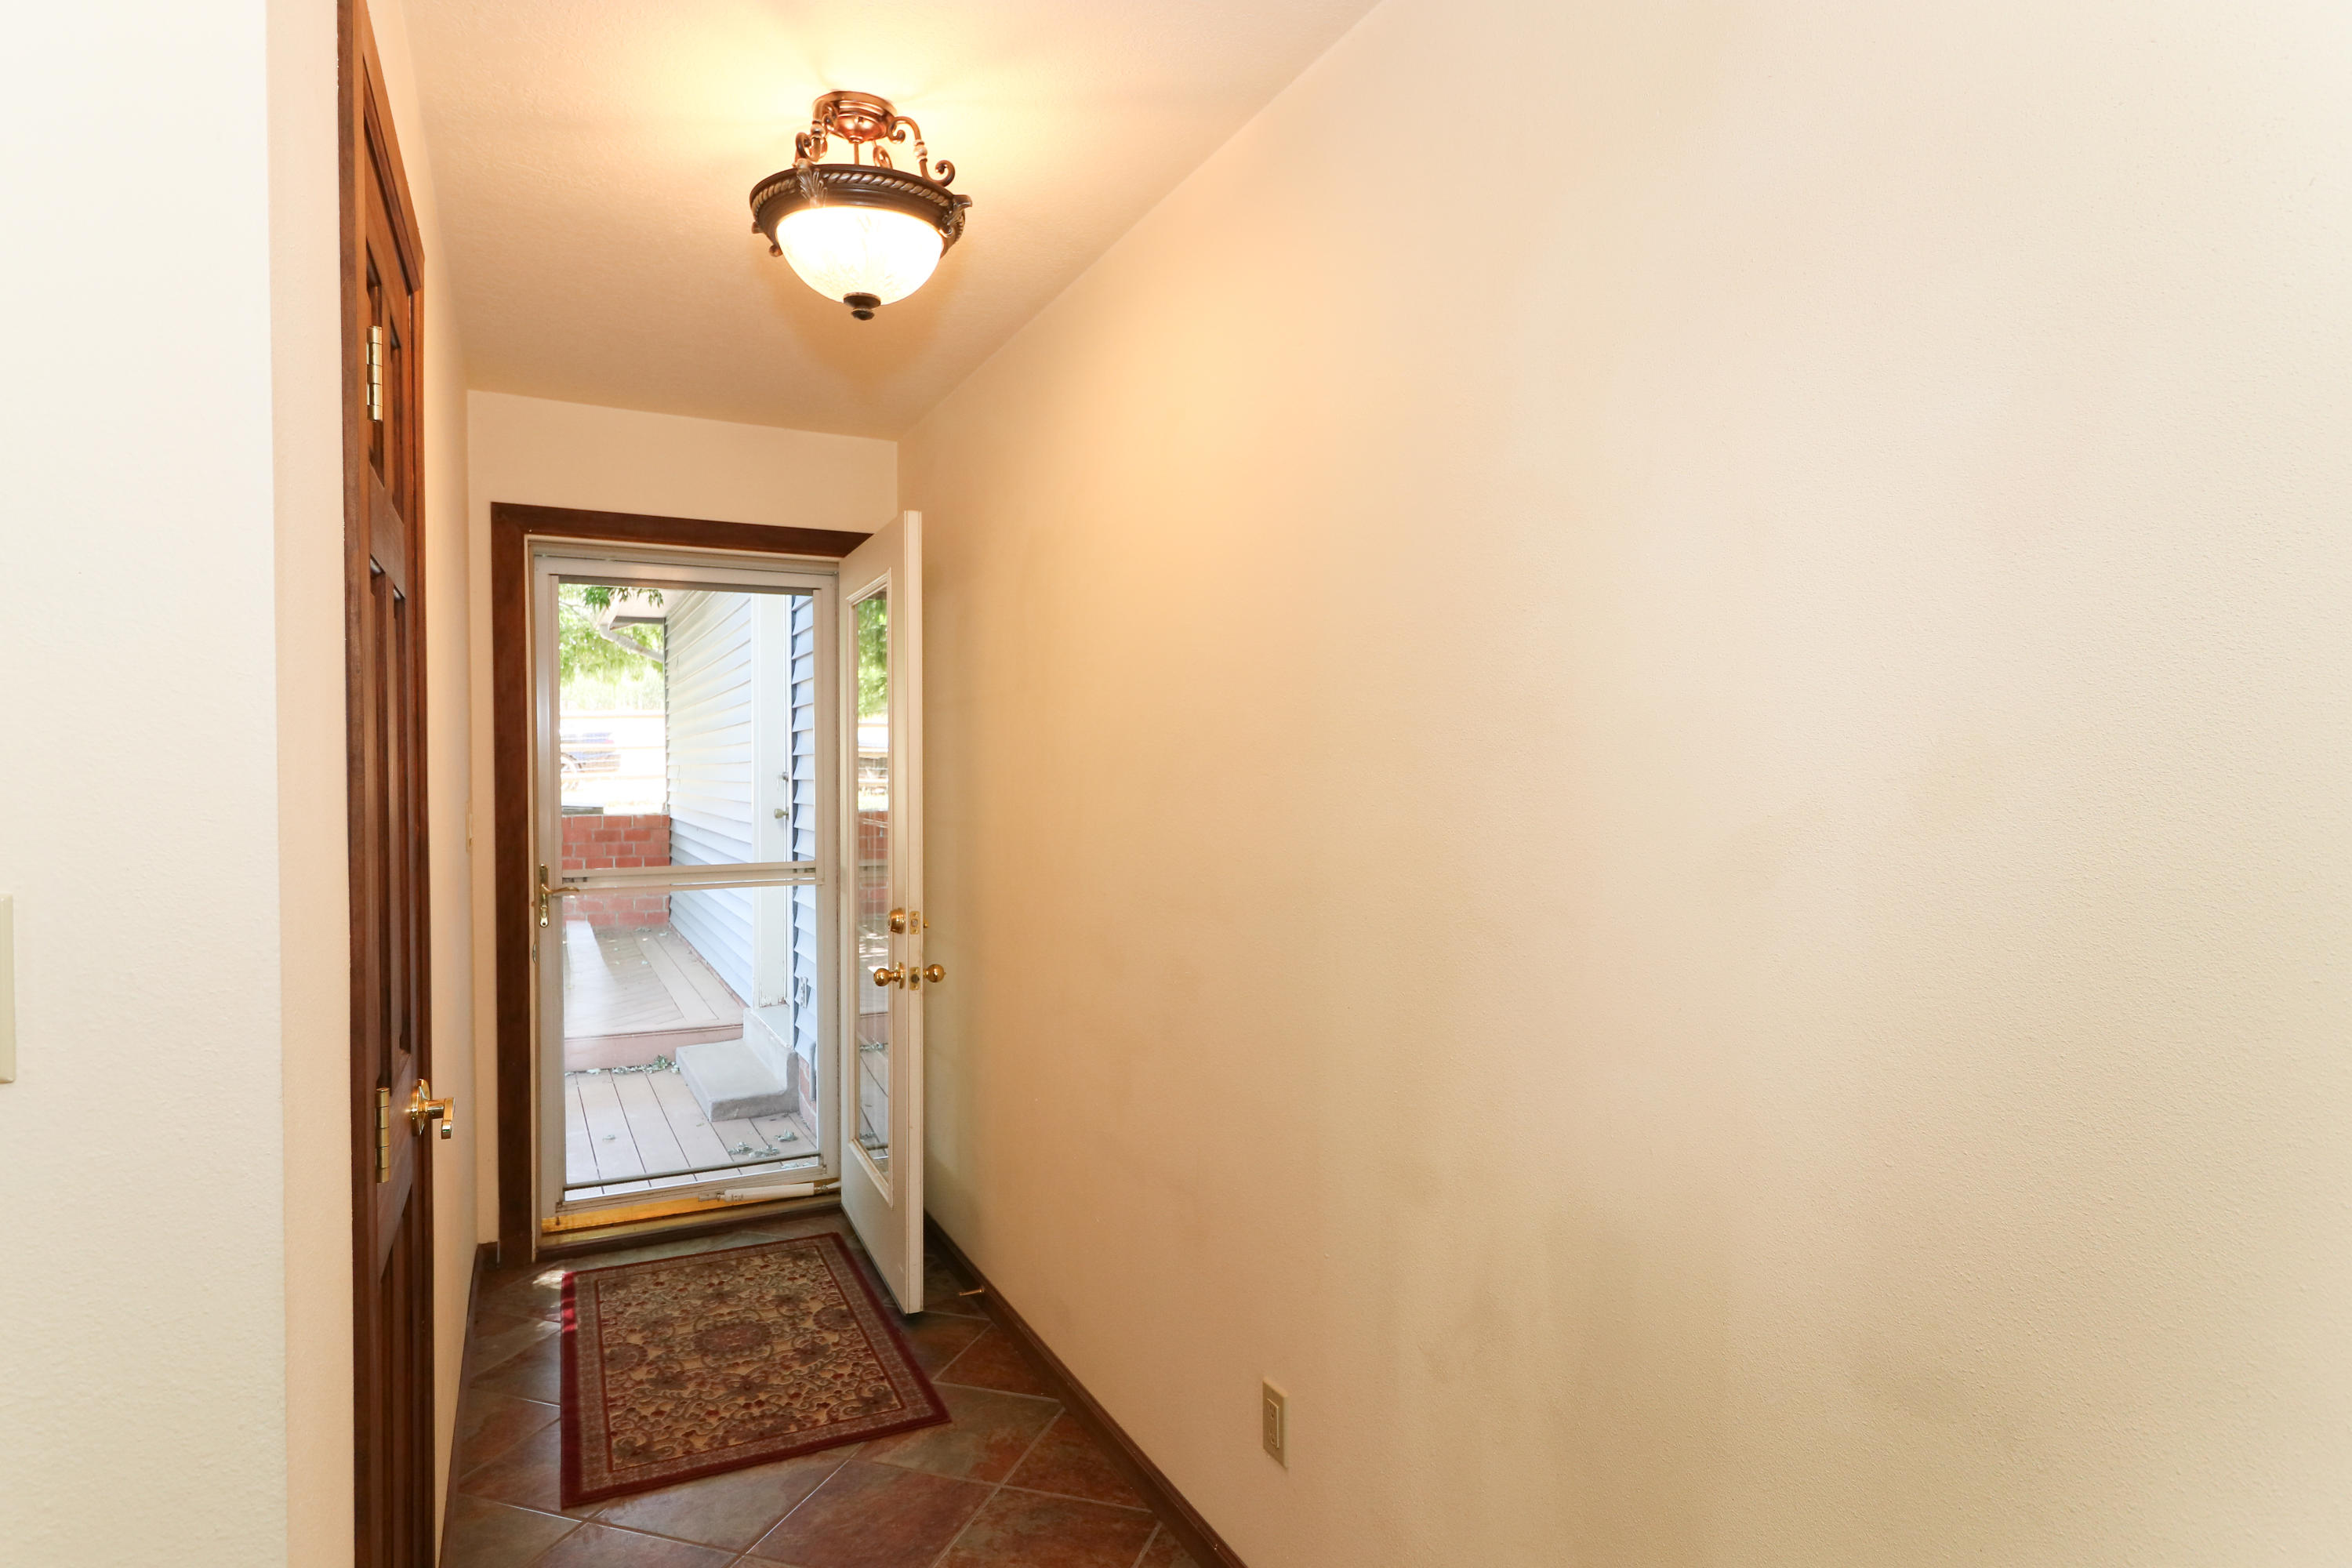 Hallway to patio on side of house